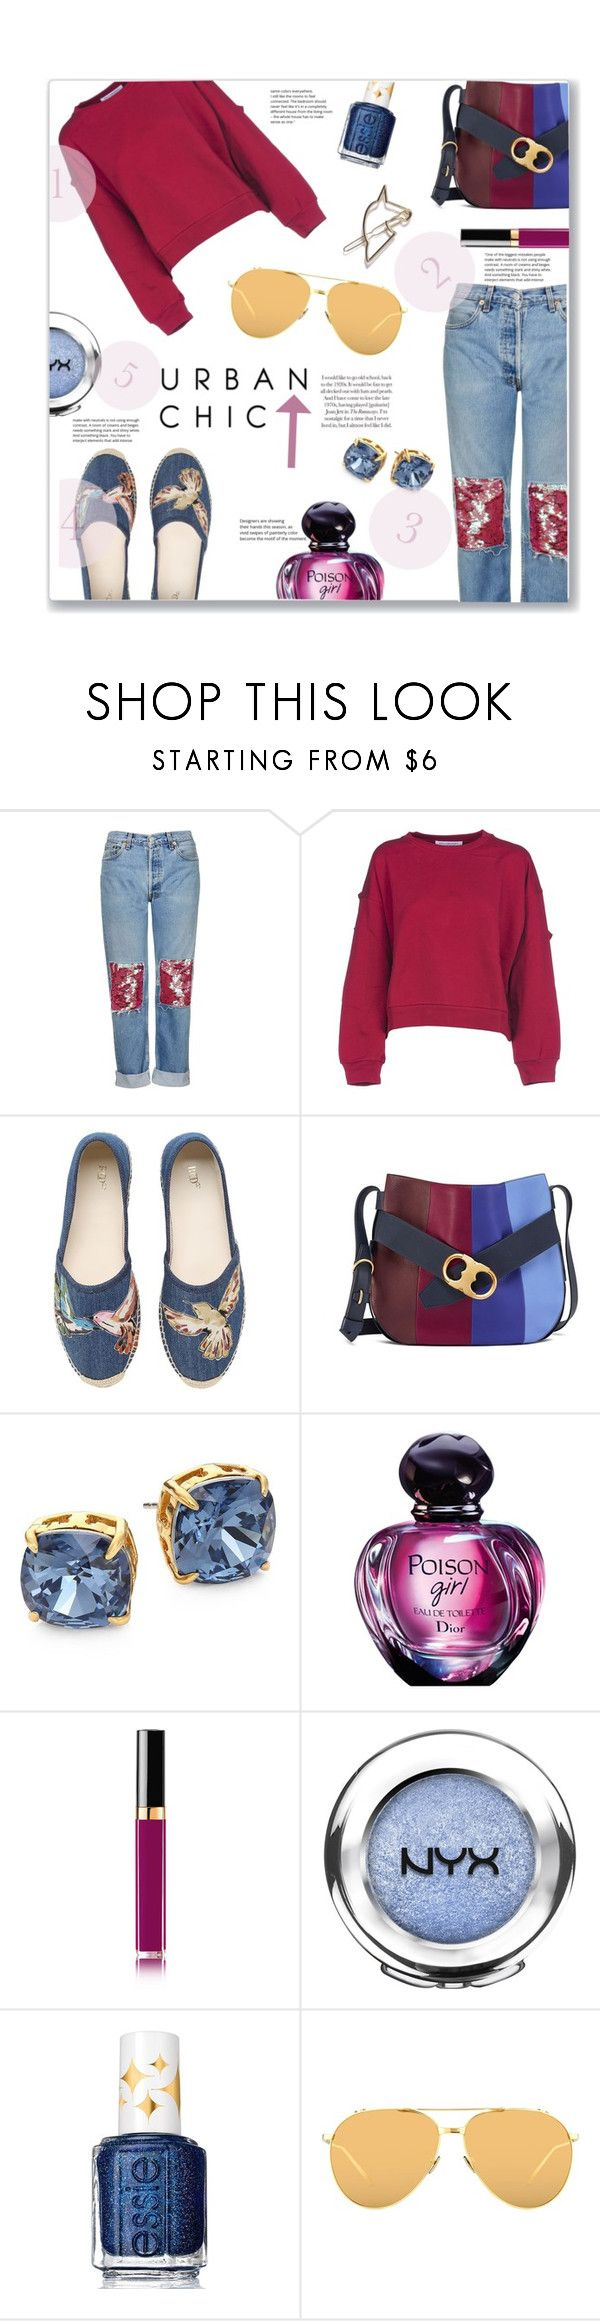 """Украшенные джинсы"" by jckallan ❤ liked on Polyvore featuring Topshop, Philosophy di Lorenzo Serafini, RED Valentino, Tory Burch, Chanel, NYX, Essie, Linda Farrow and contestentry"